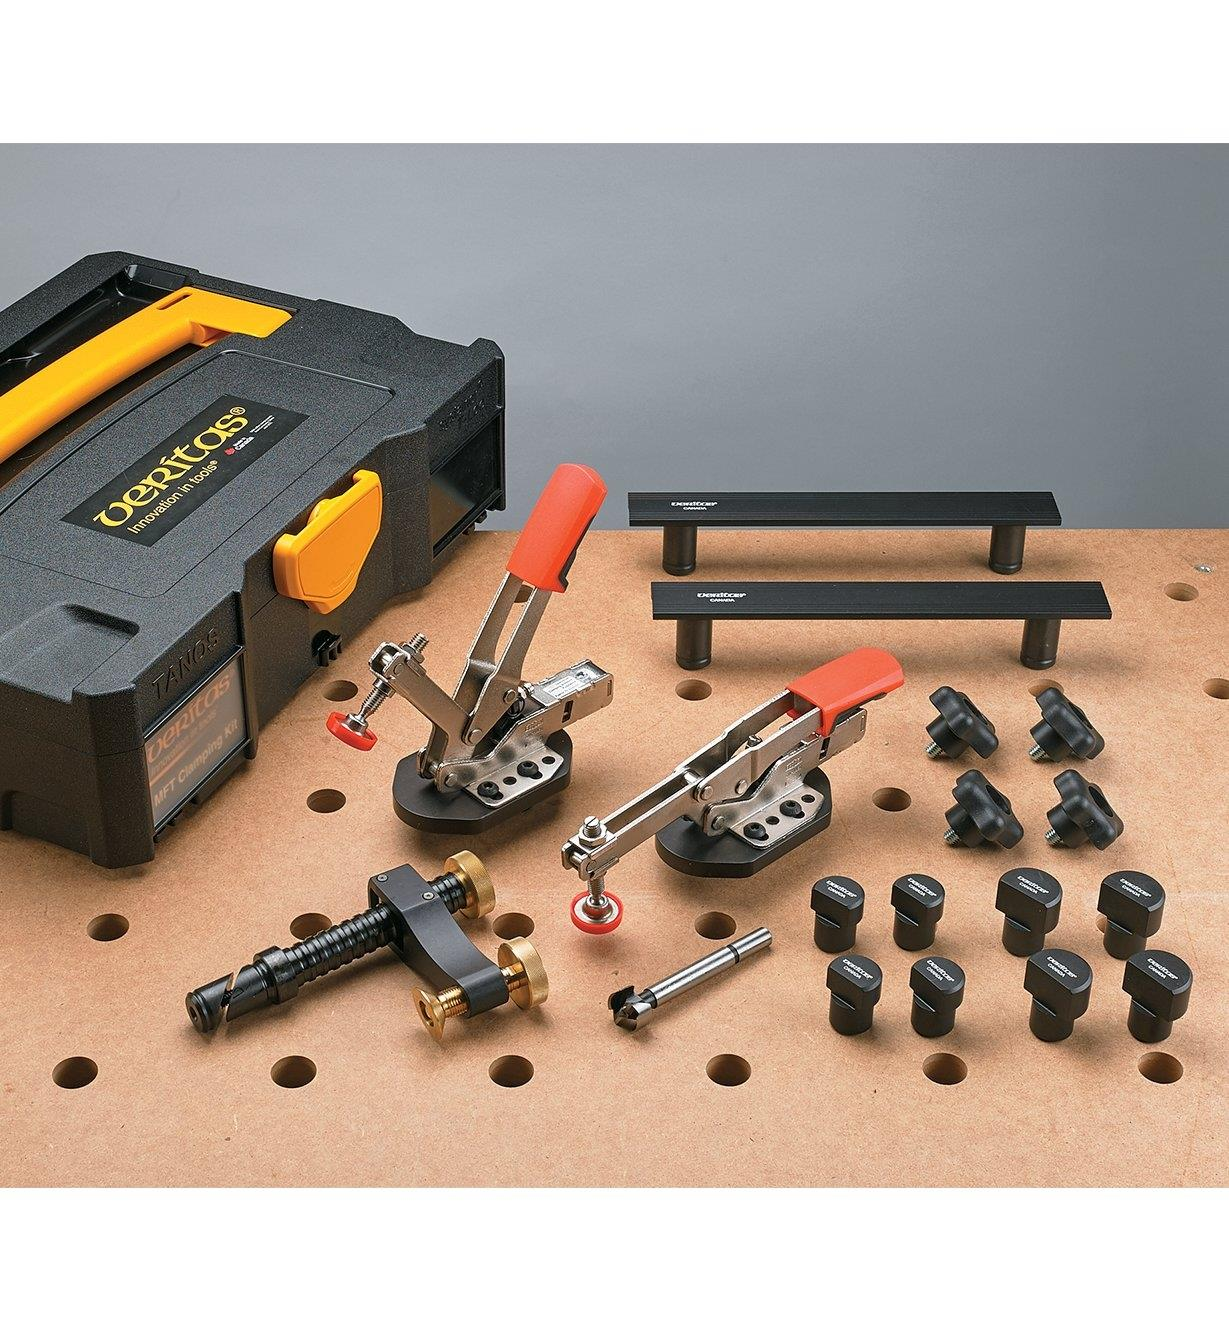 ZV10090 - Veritas MFT Clamping Kit